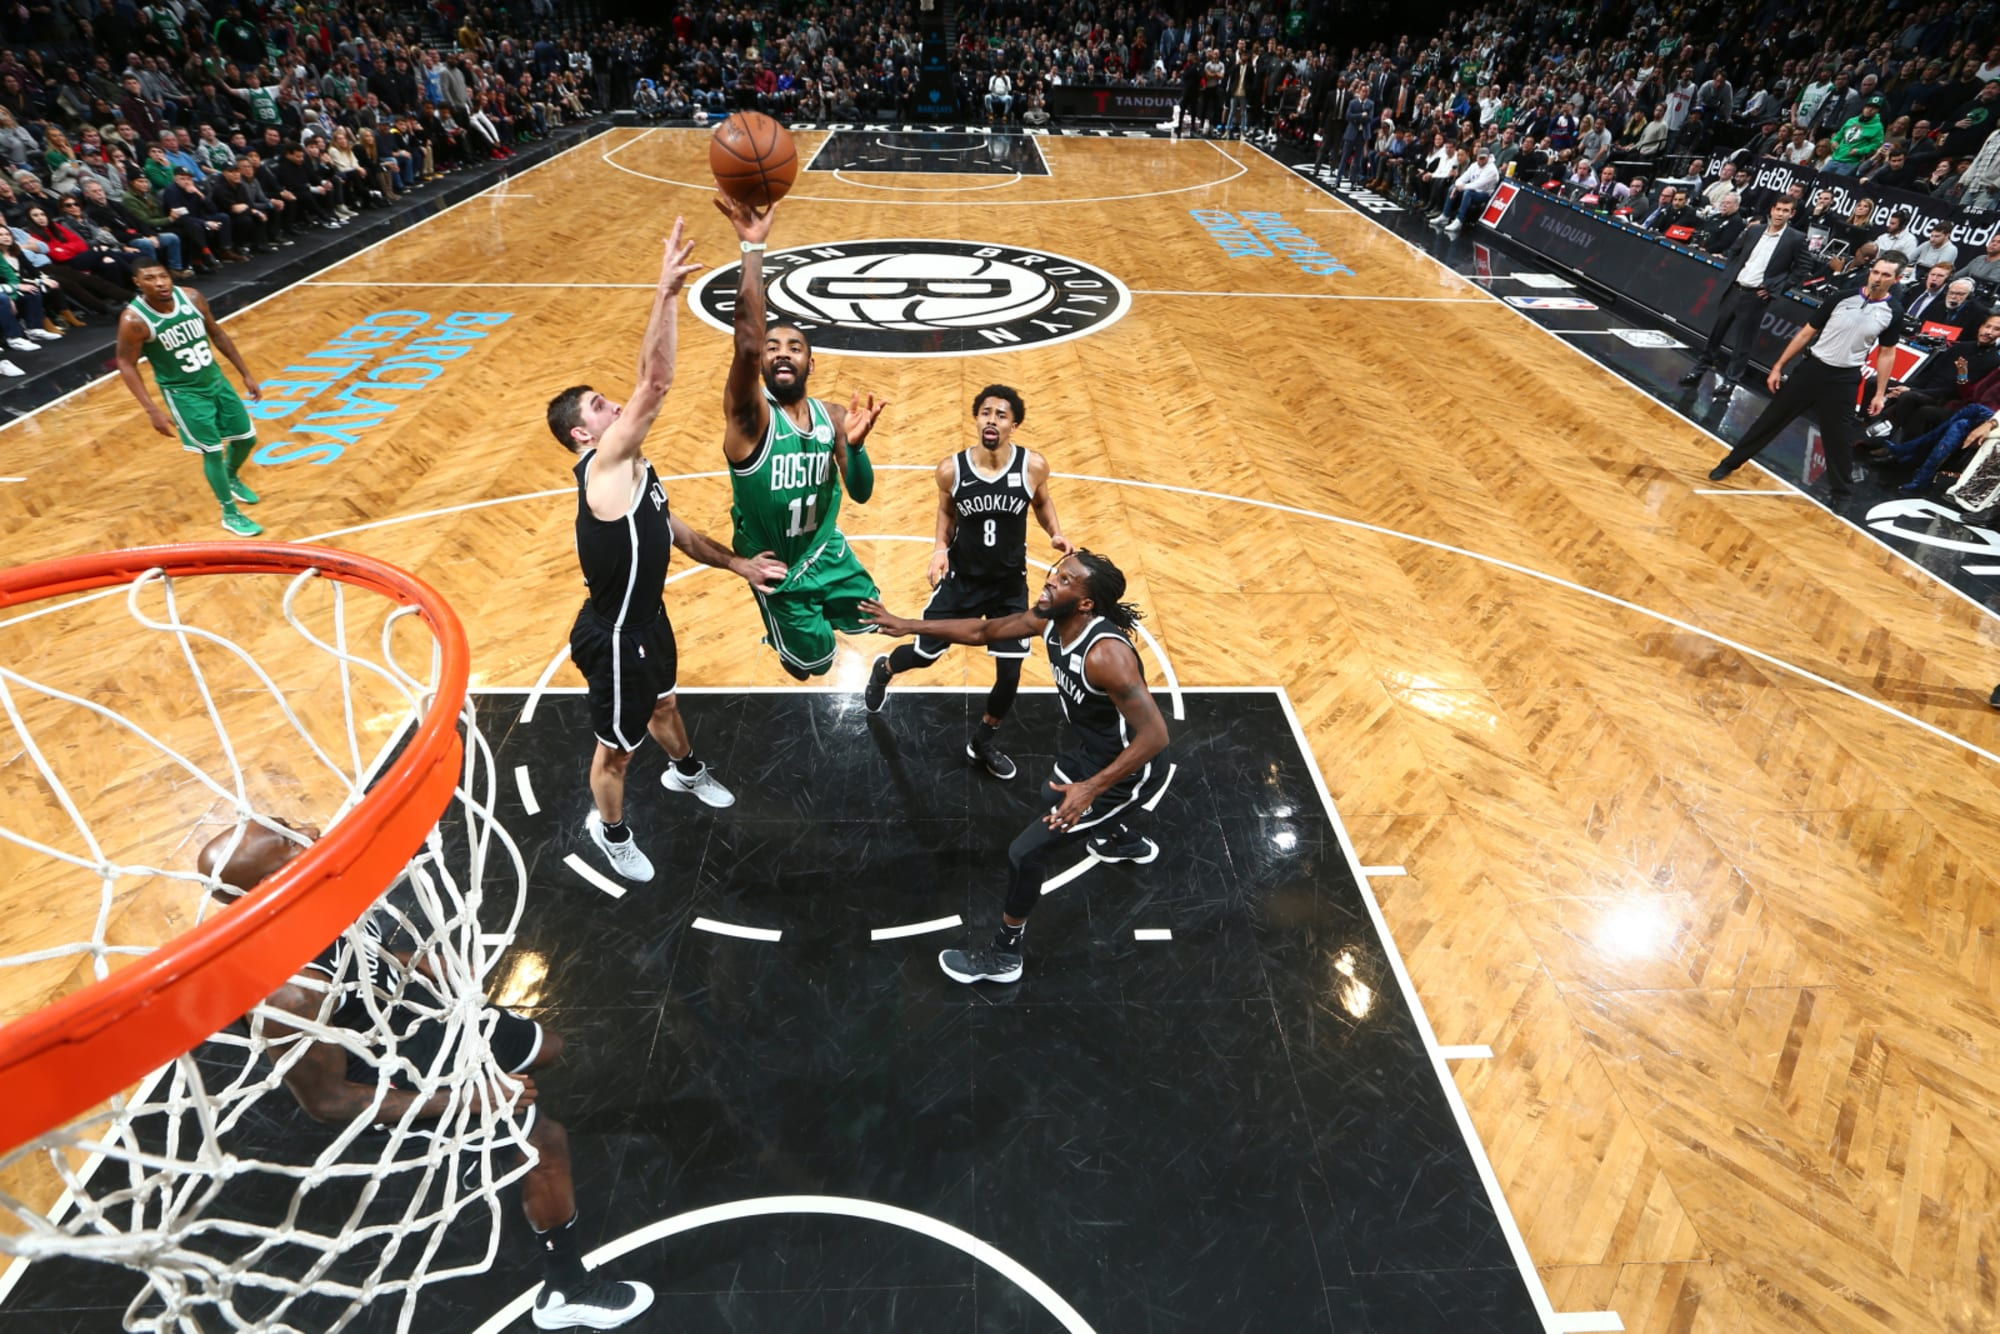 The Brooklyn Nets New Space Gray Court Inspired By New York